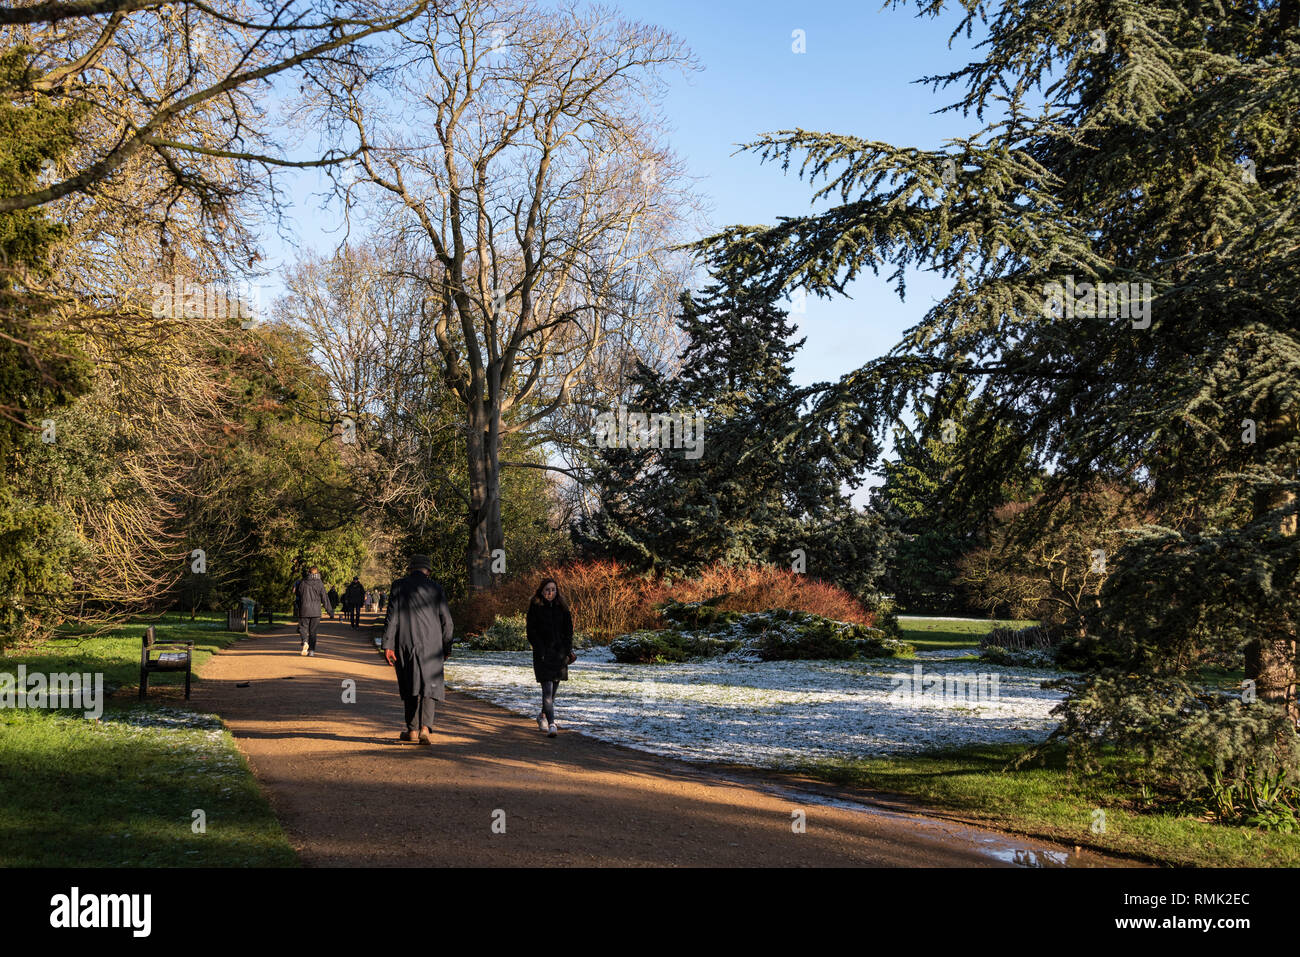 People walking in the park, Oxford University Parks in Winter - Stock Image